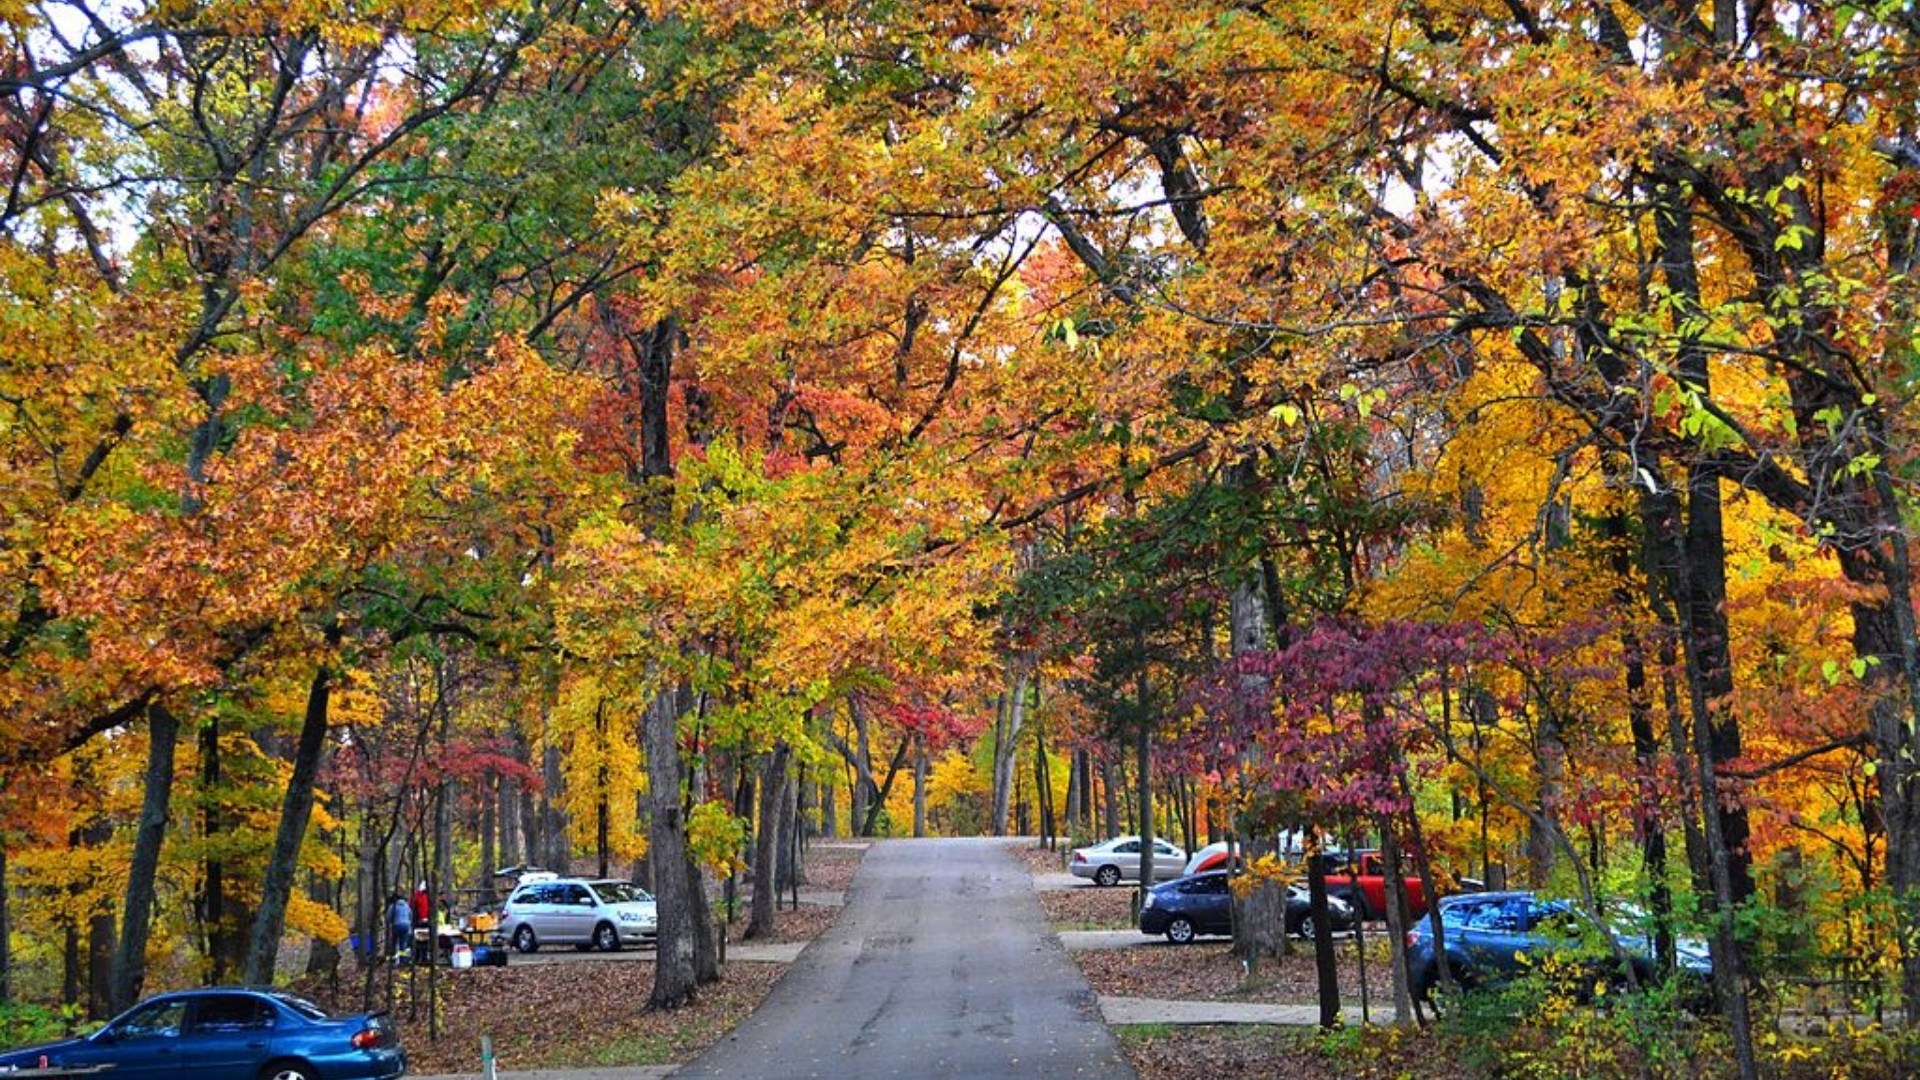 mcdermott remodeling fall foliage around St. Louis